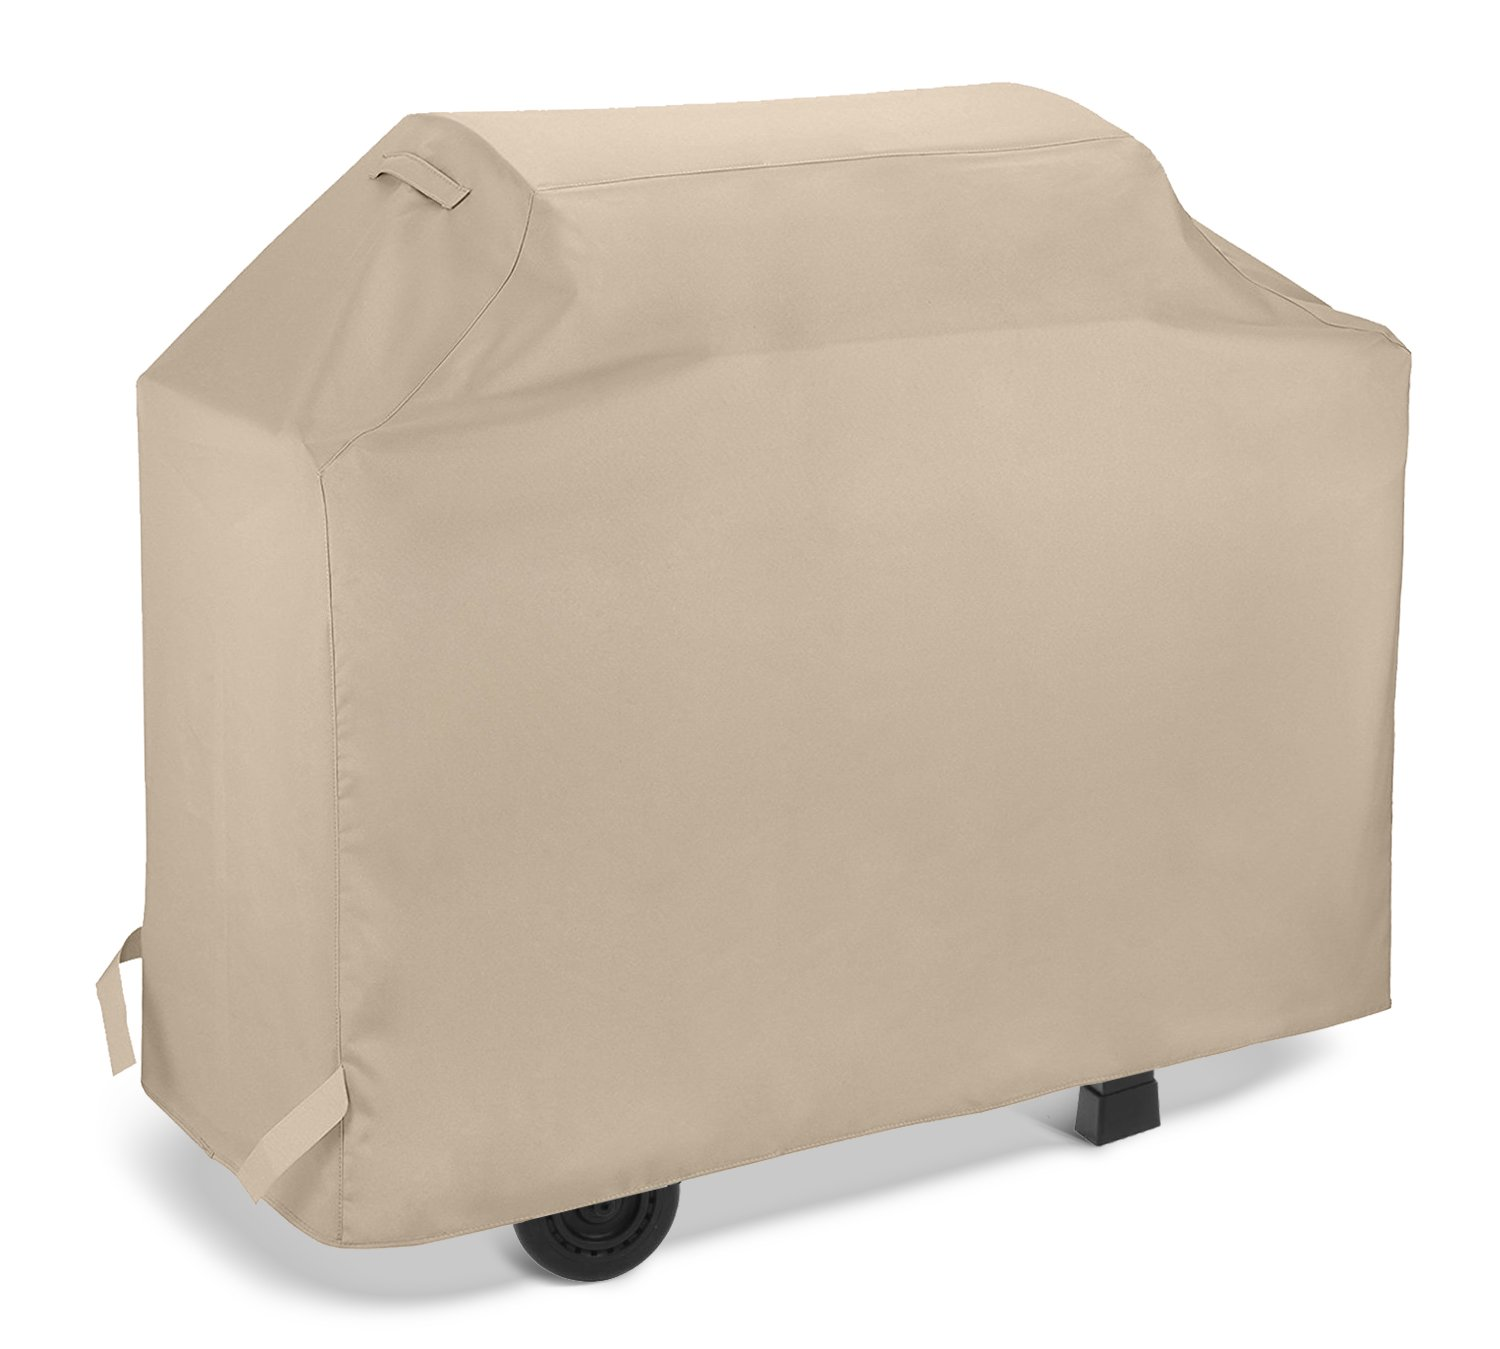 SunPatio Gas Grill Cover 58 Inch, Heavy Duty Waterproof Outdoor Barbecue Grill Cover, Durable Charcoal Smoker Cover, All Weather Protection for Weber Char-Broil Nexgrill Grills and More, Beige